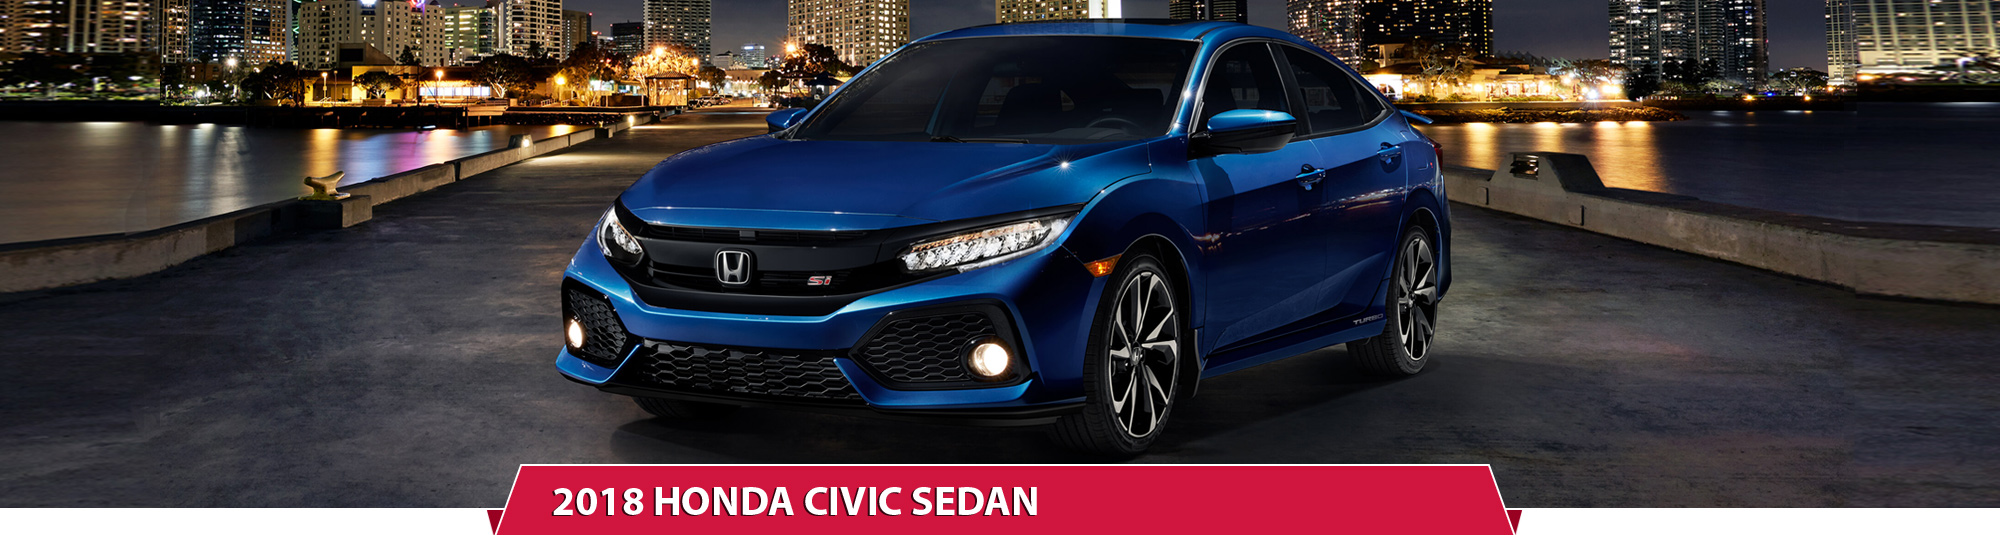 All The New 2018 Honda Civic Sedan